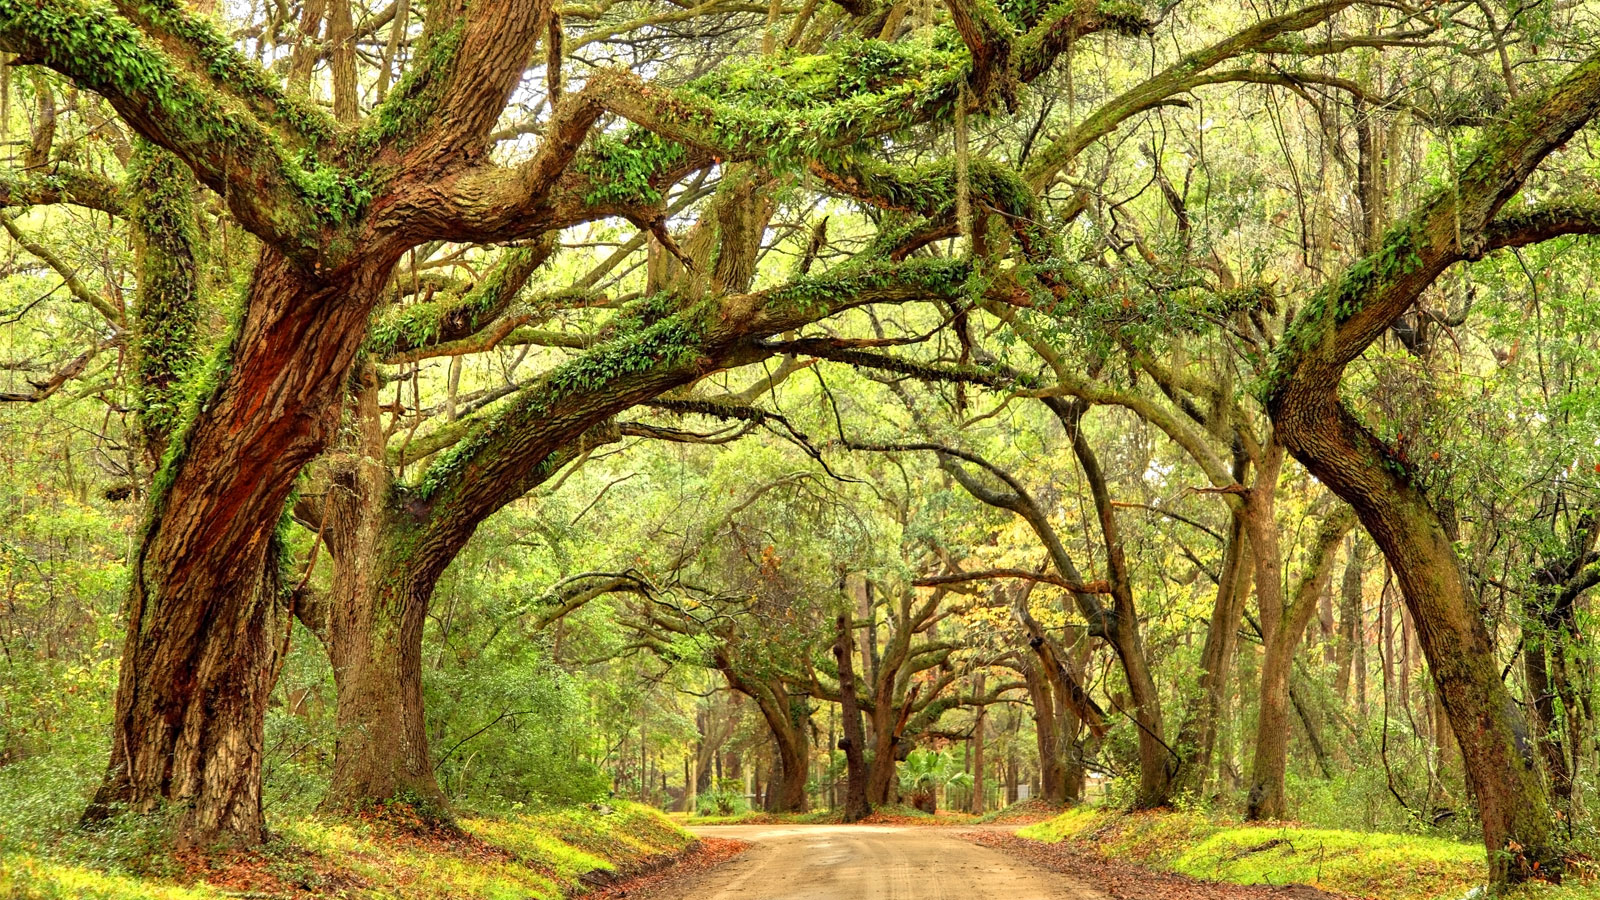 Fly-fishing, Parish Ruins, and Vintage Bikes: The 4-Day Weekend in South Carolina's Lowcountry